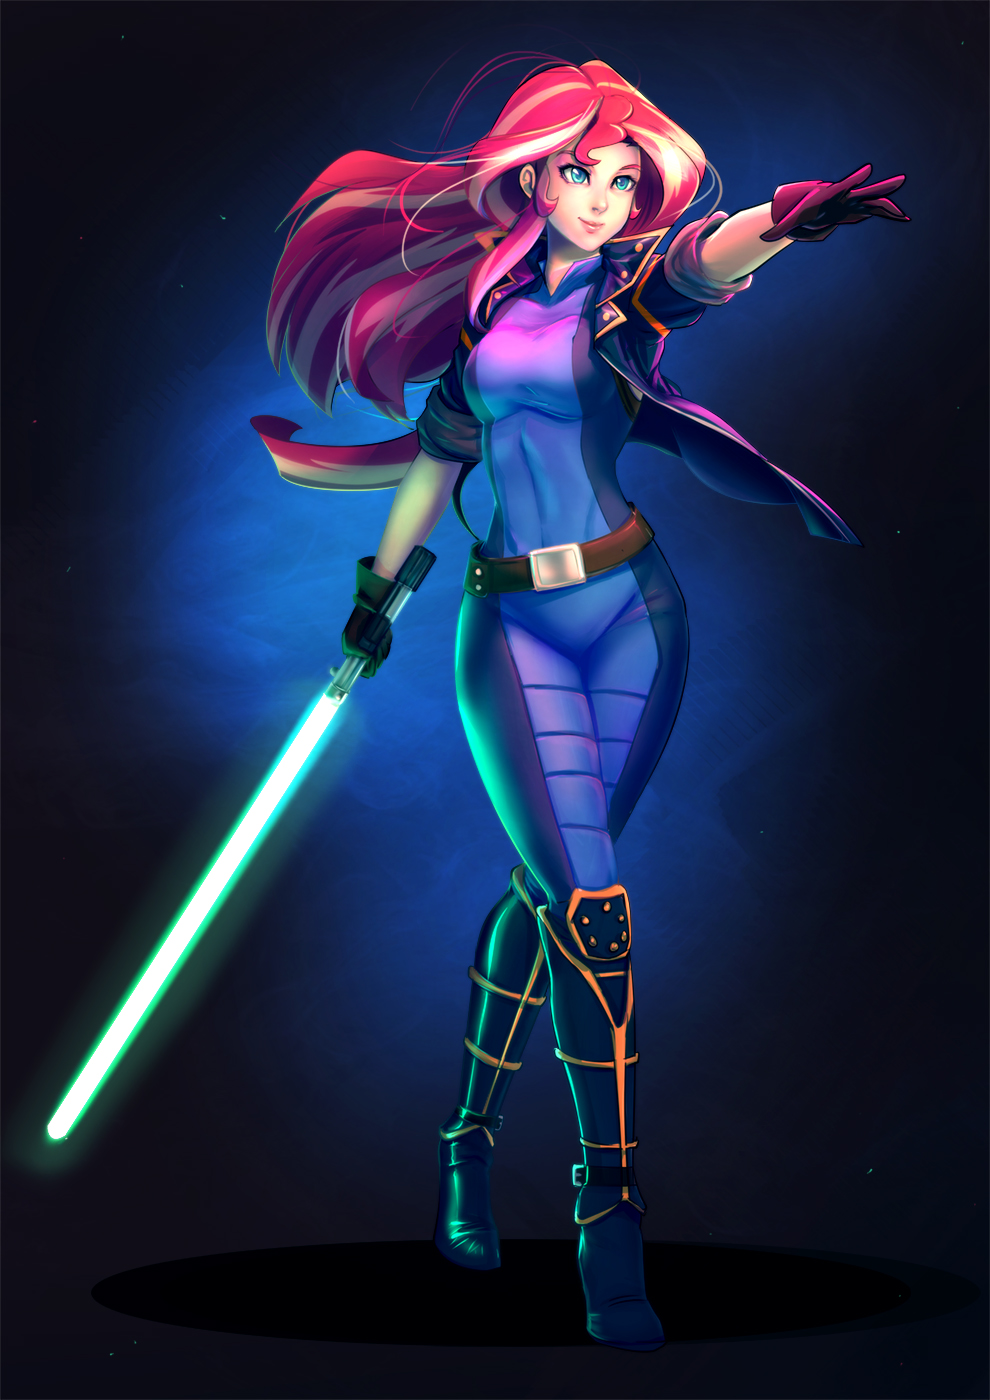 1girl bakki blonde_hair bodysuit boots energy_sword green_eyes highres jacket knee_boots lightsaber long_hair mismatched_gloves multicolored_hair my_little_pony my_little_pony_equestria_girls my_little_pony_friendship_is_magic personification redhead short_sleeves solo star_wars streaked_hair sunset_shimmer sword two-tone_hair weapon